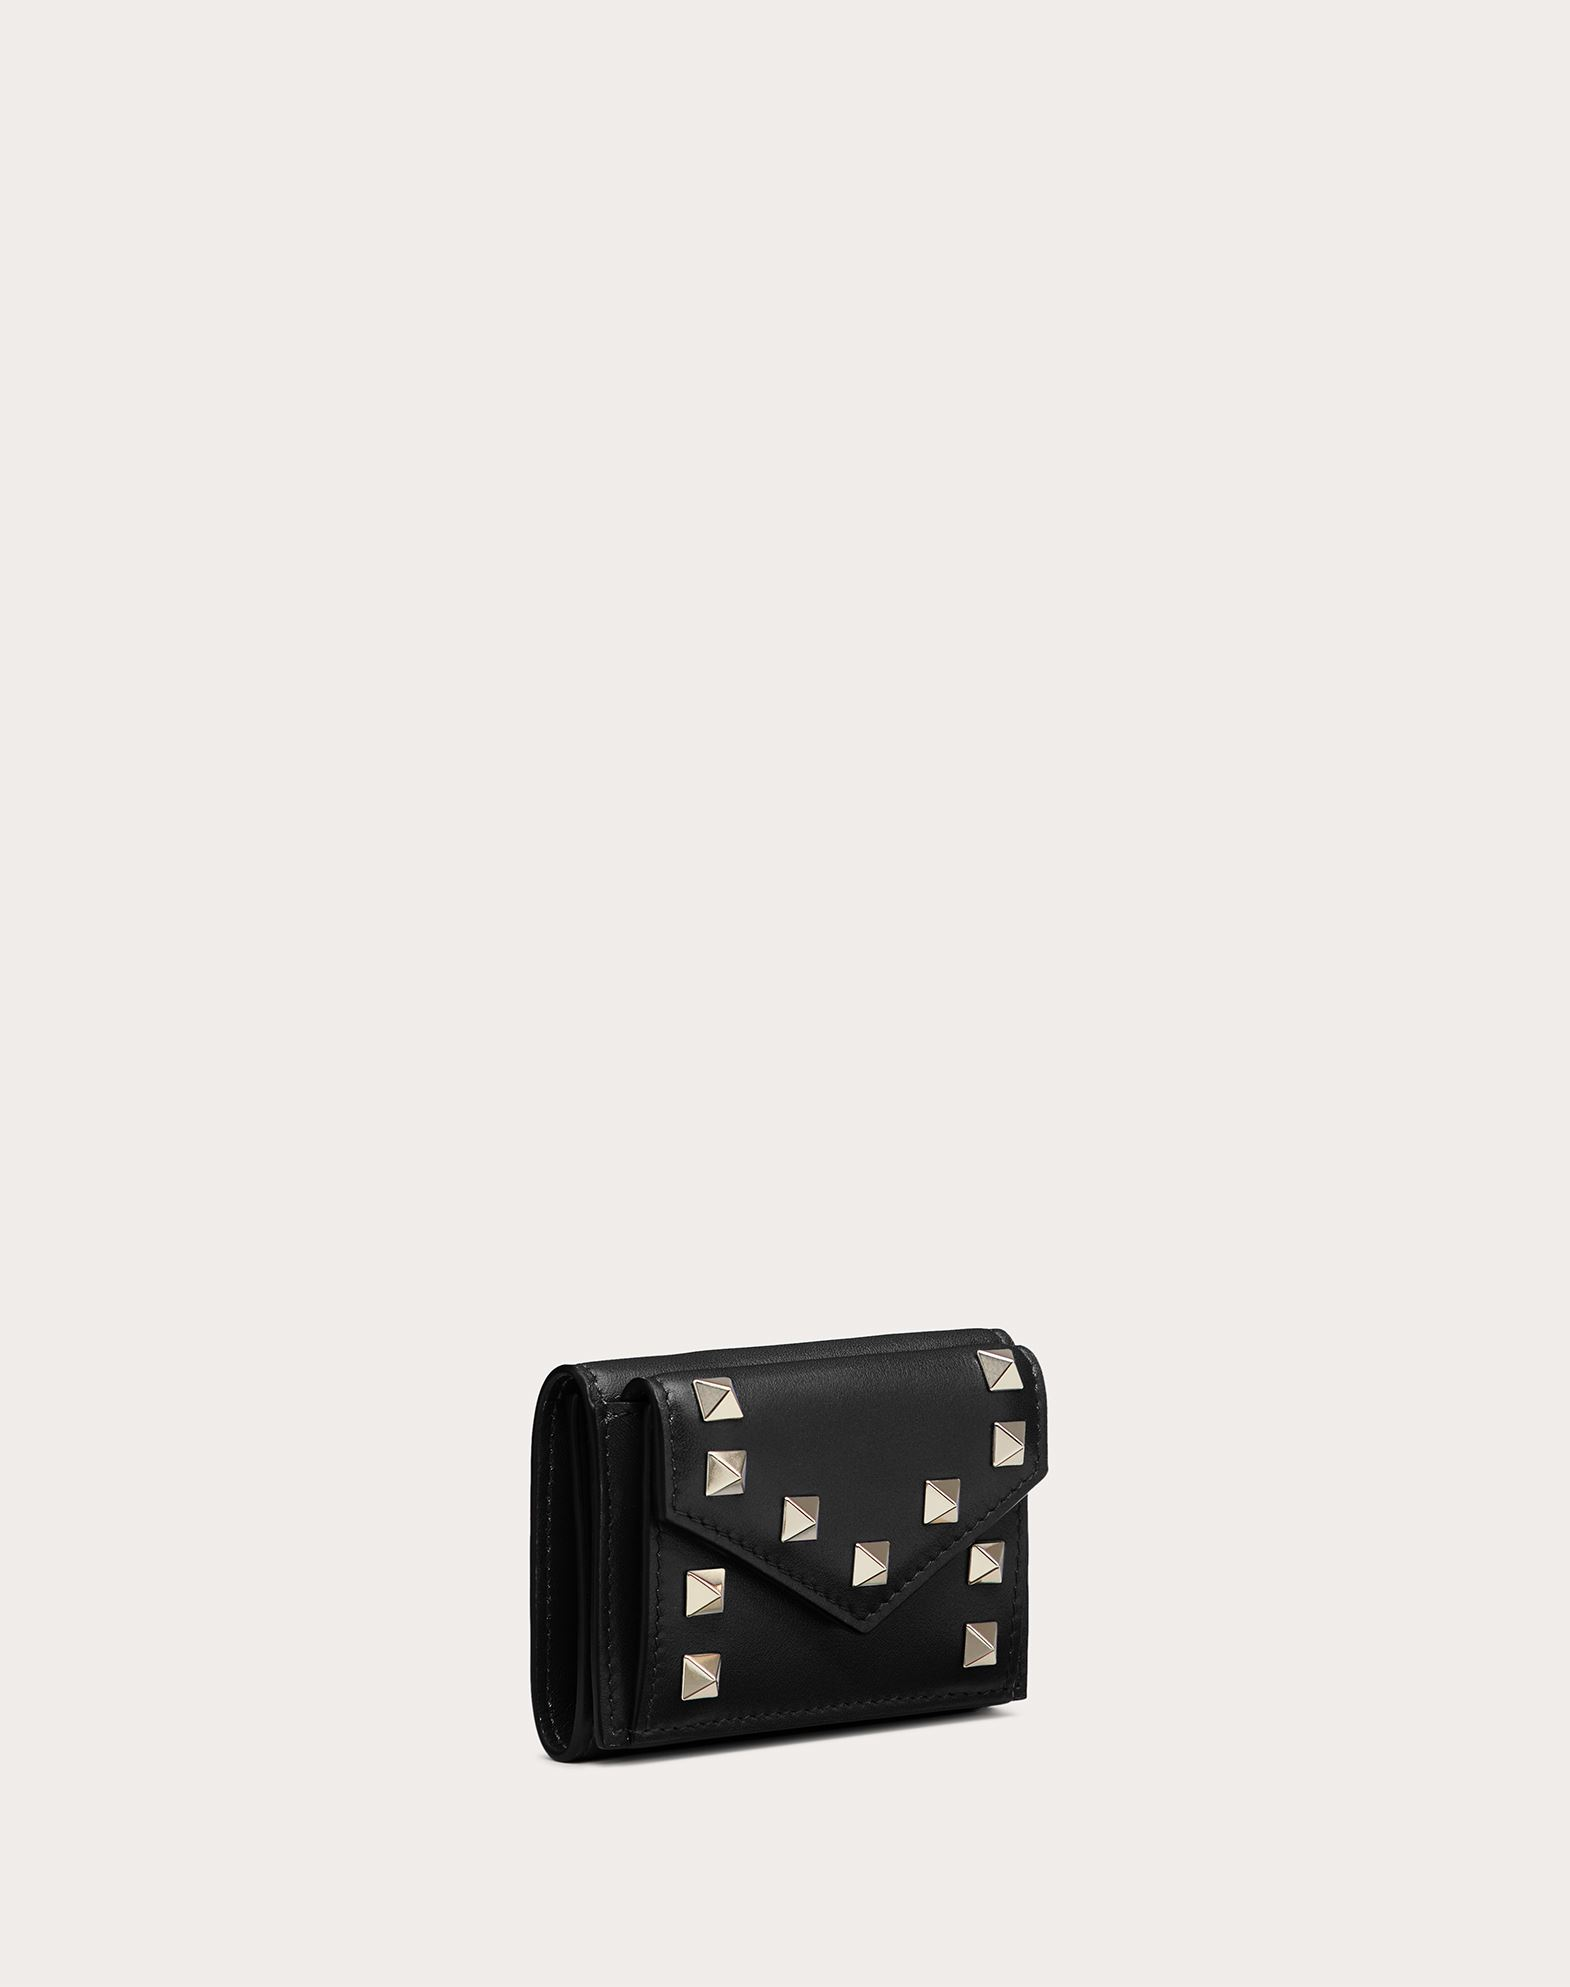 VALENTINO Studs Solid color Logo Snap button closure  46582189kp